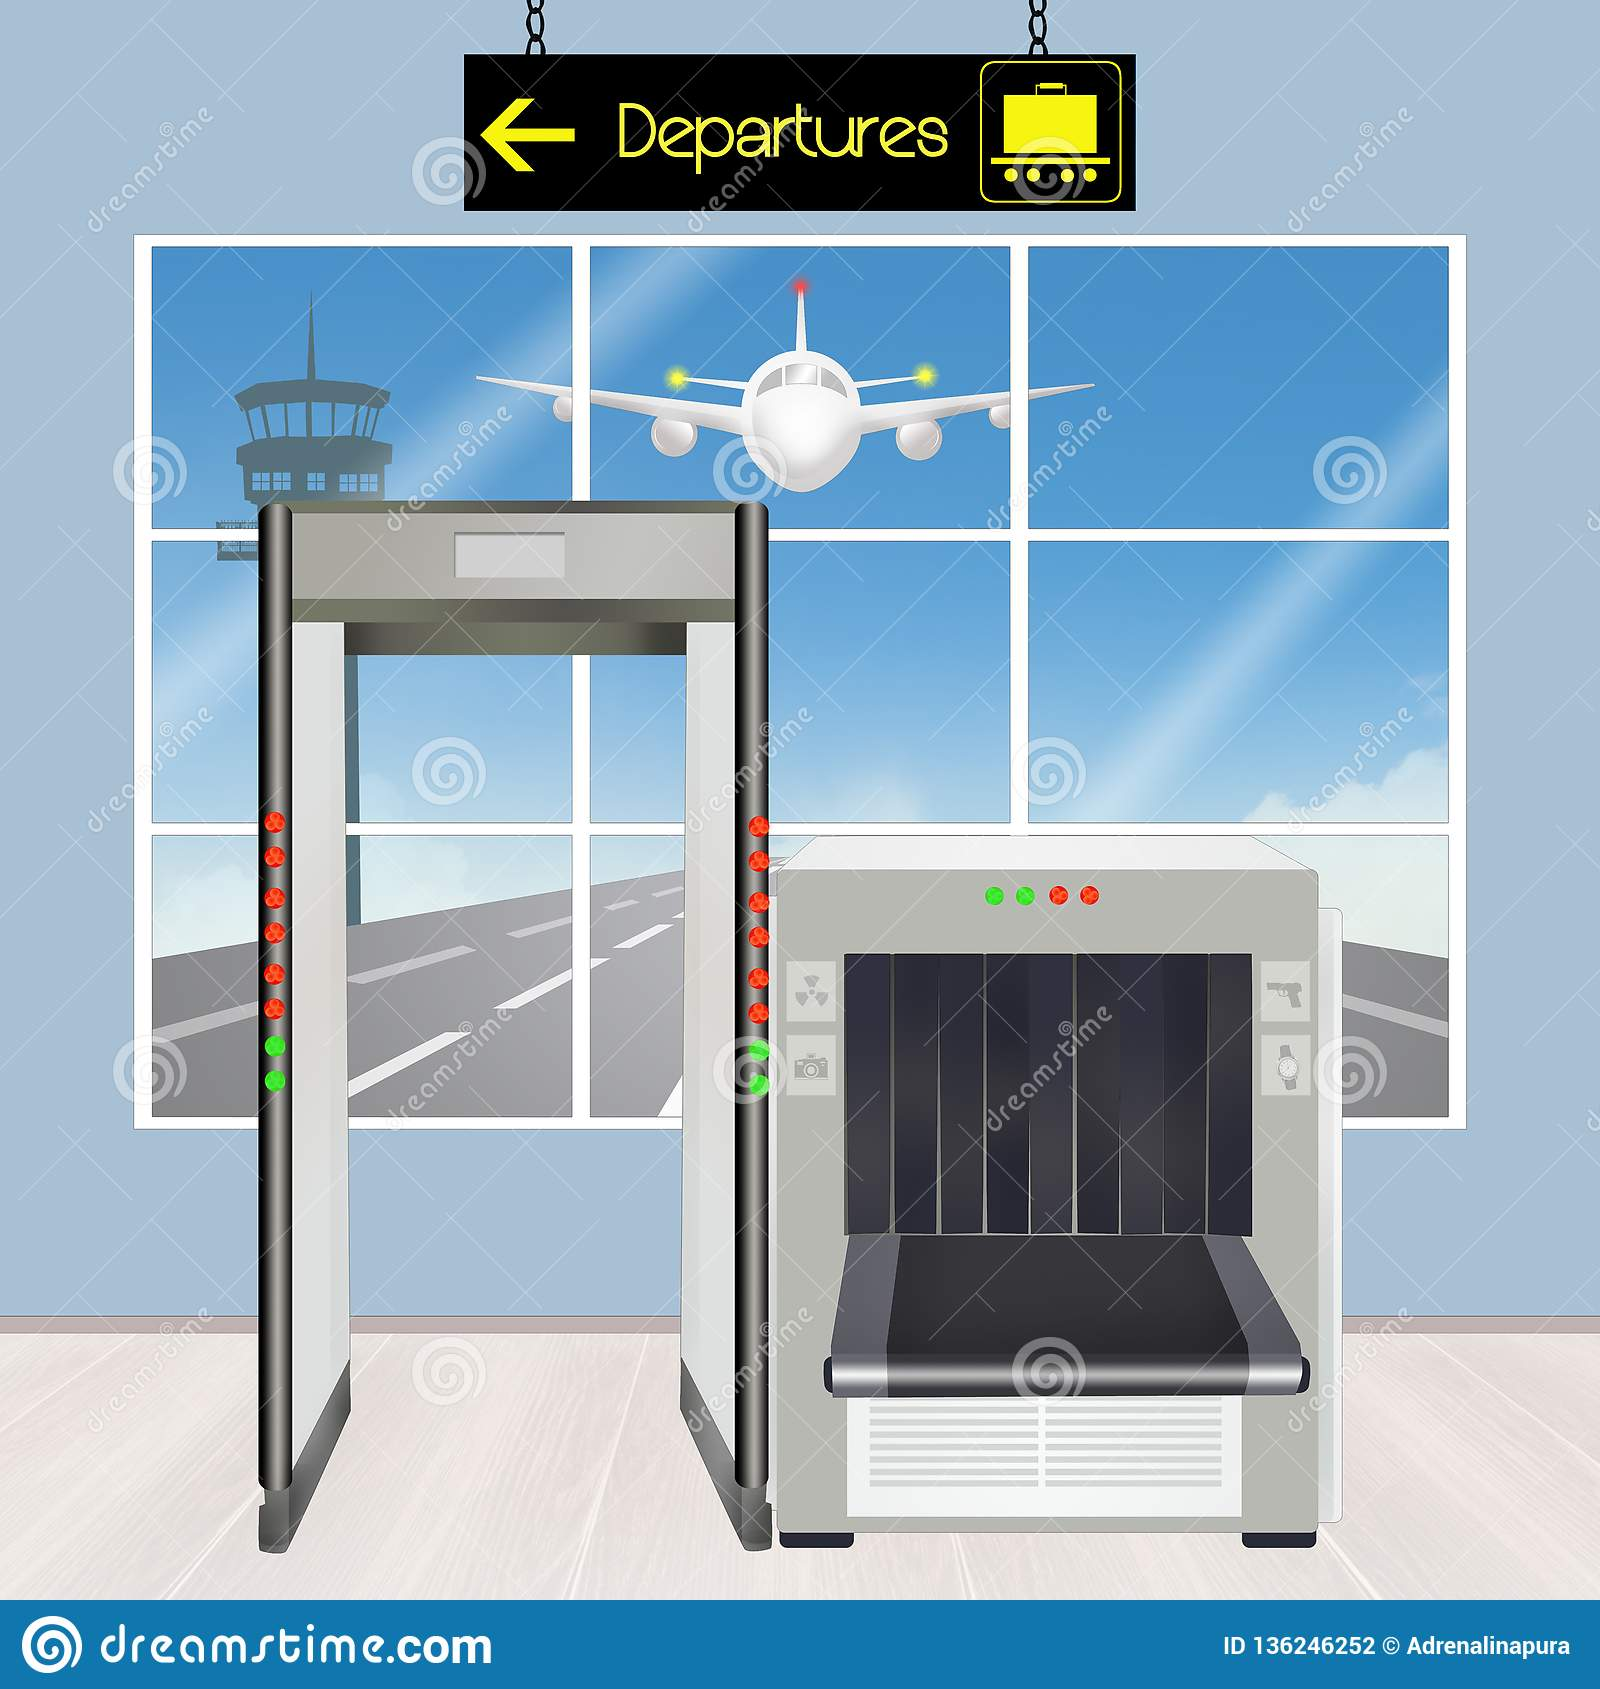 Airport security scanner stock illustration  Illustration of